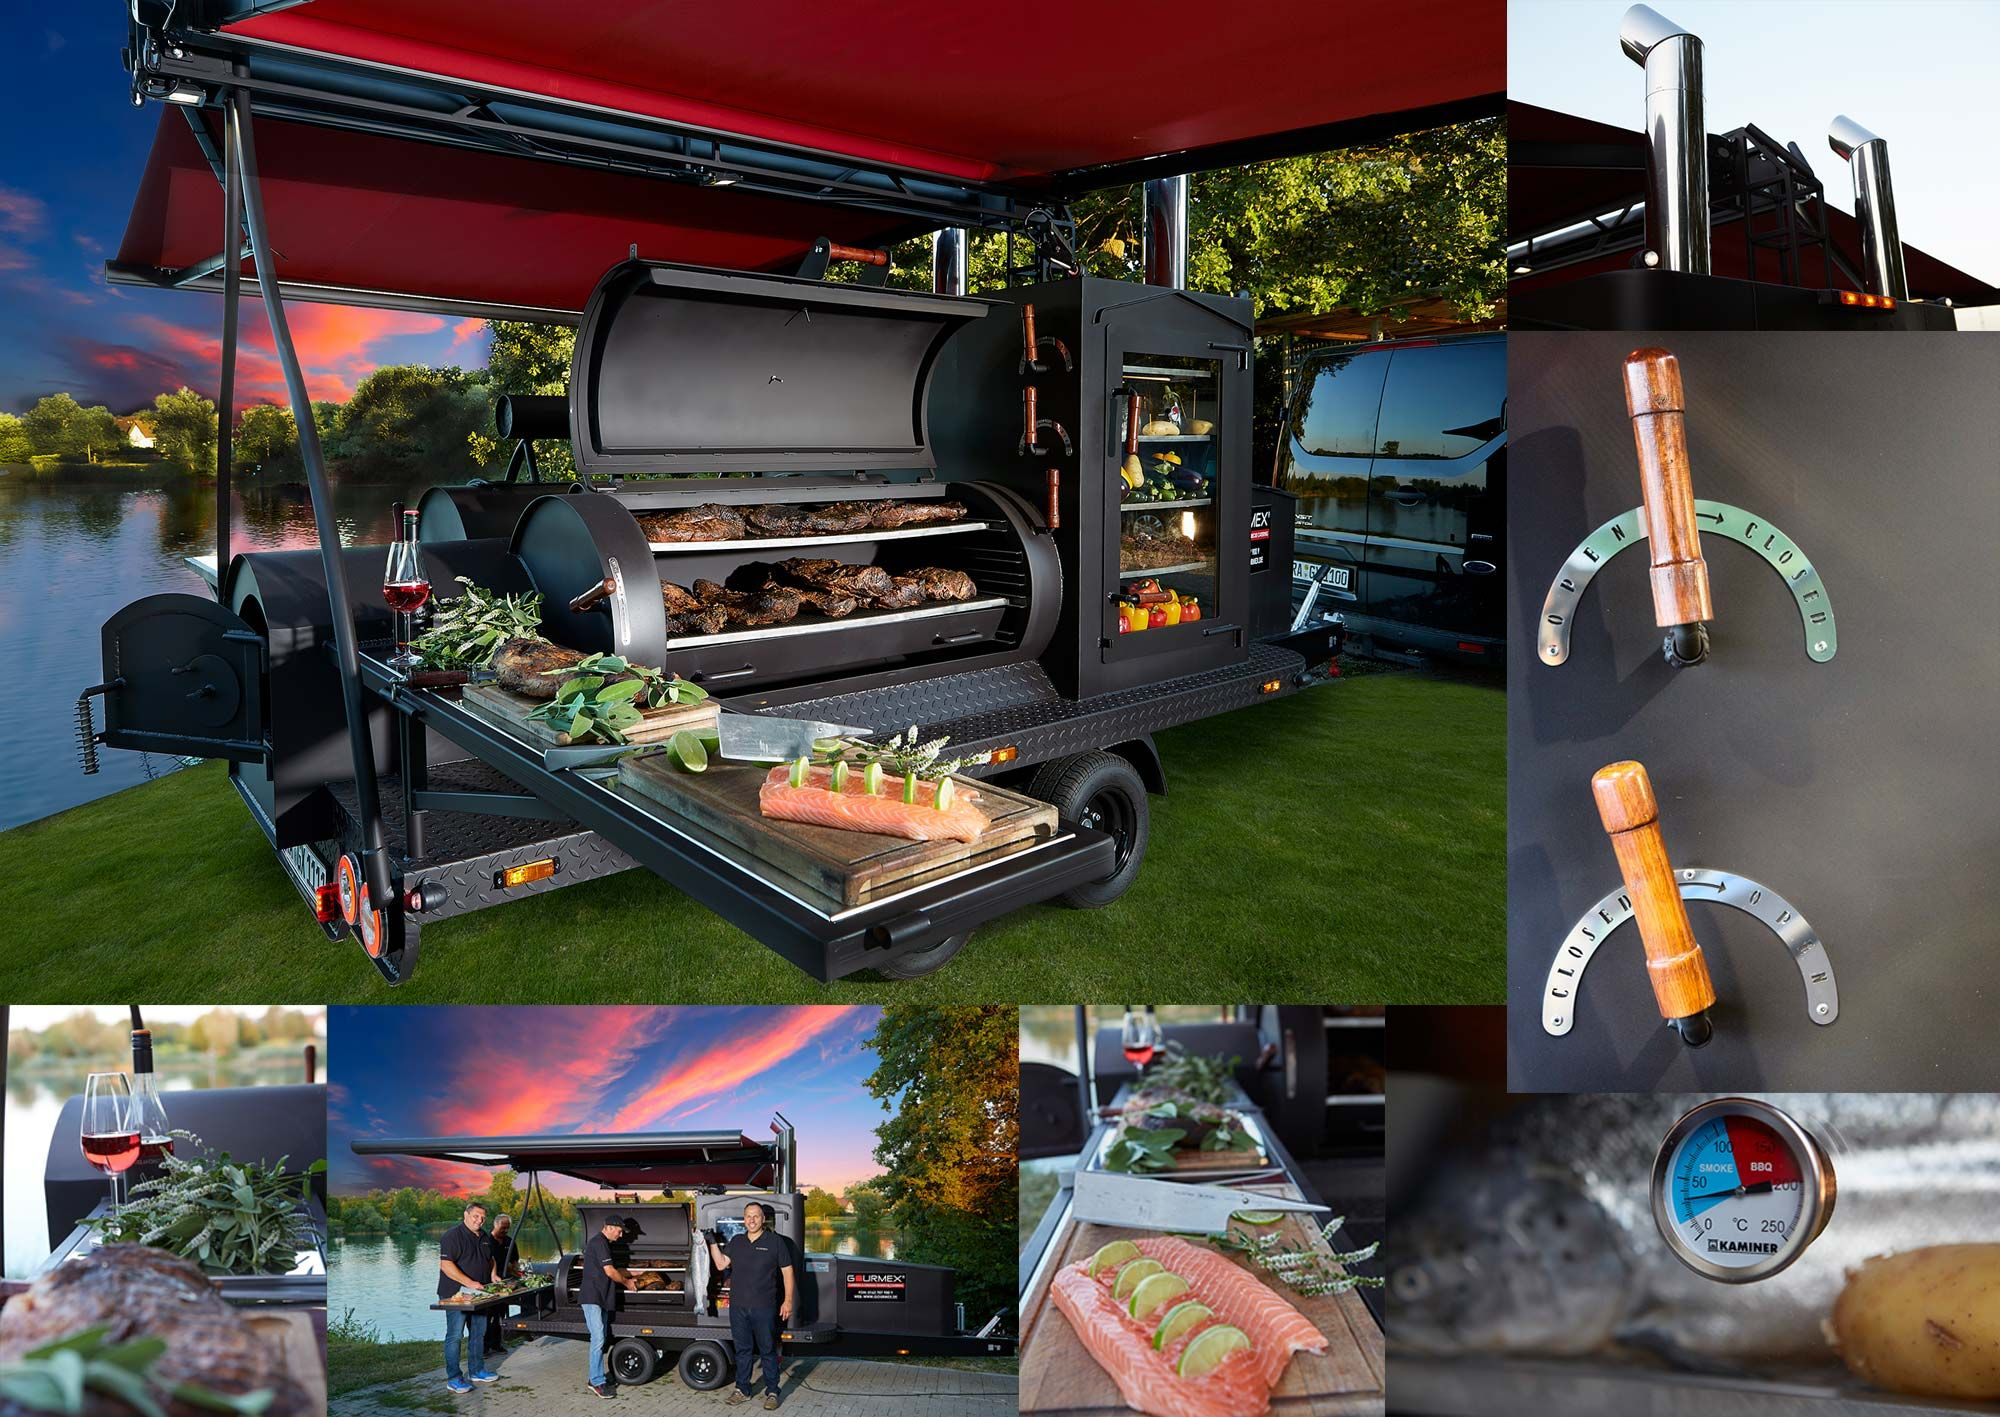 Barbecue catering grill bbq vom feinsten gourmex grill